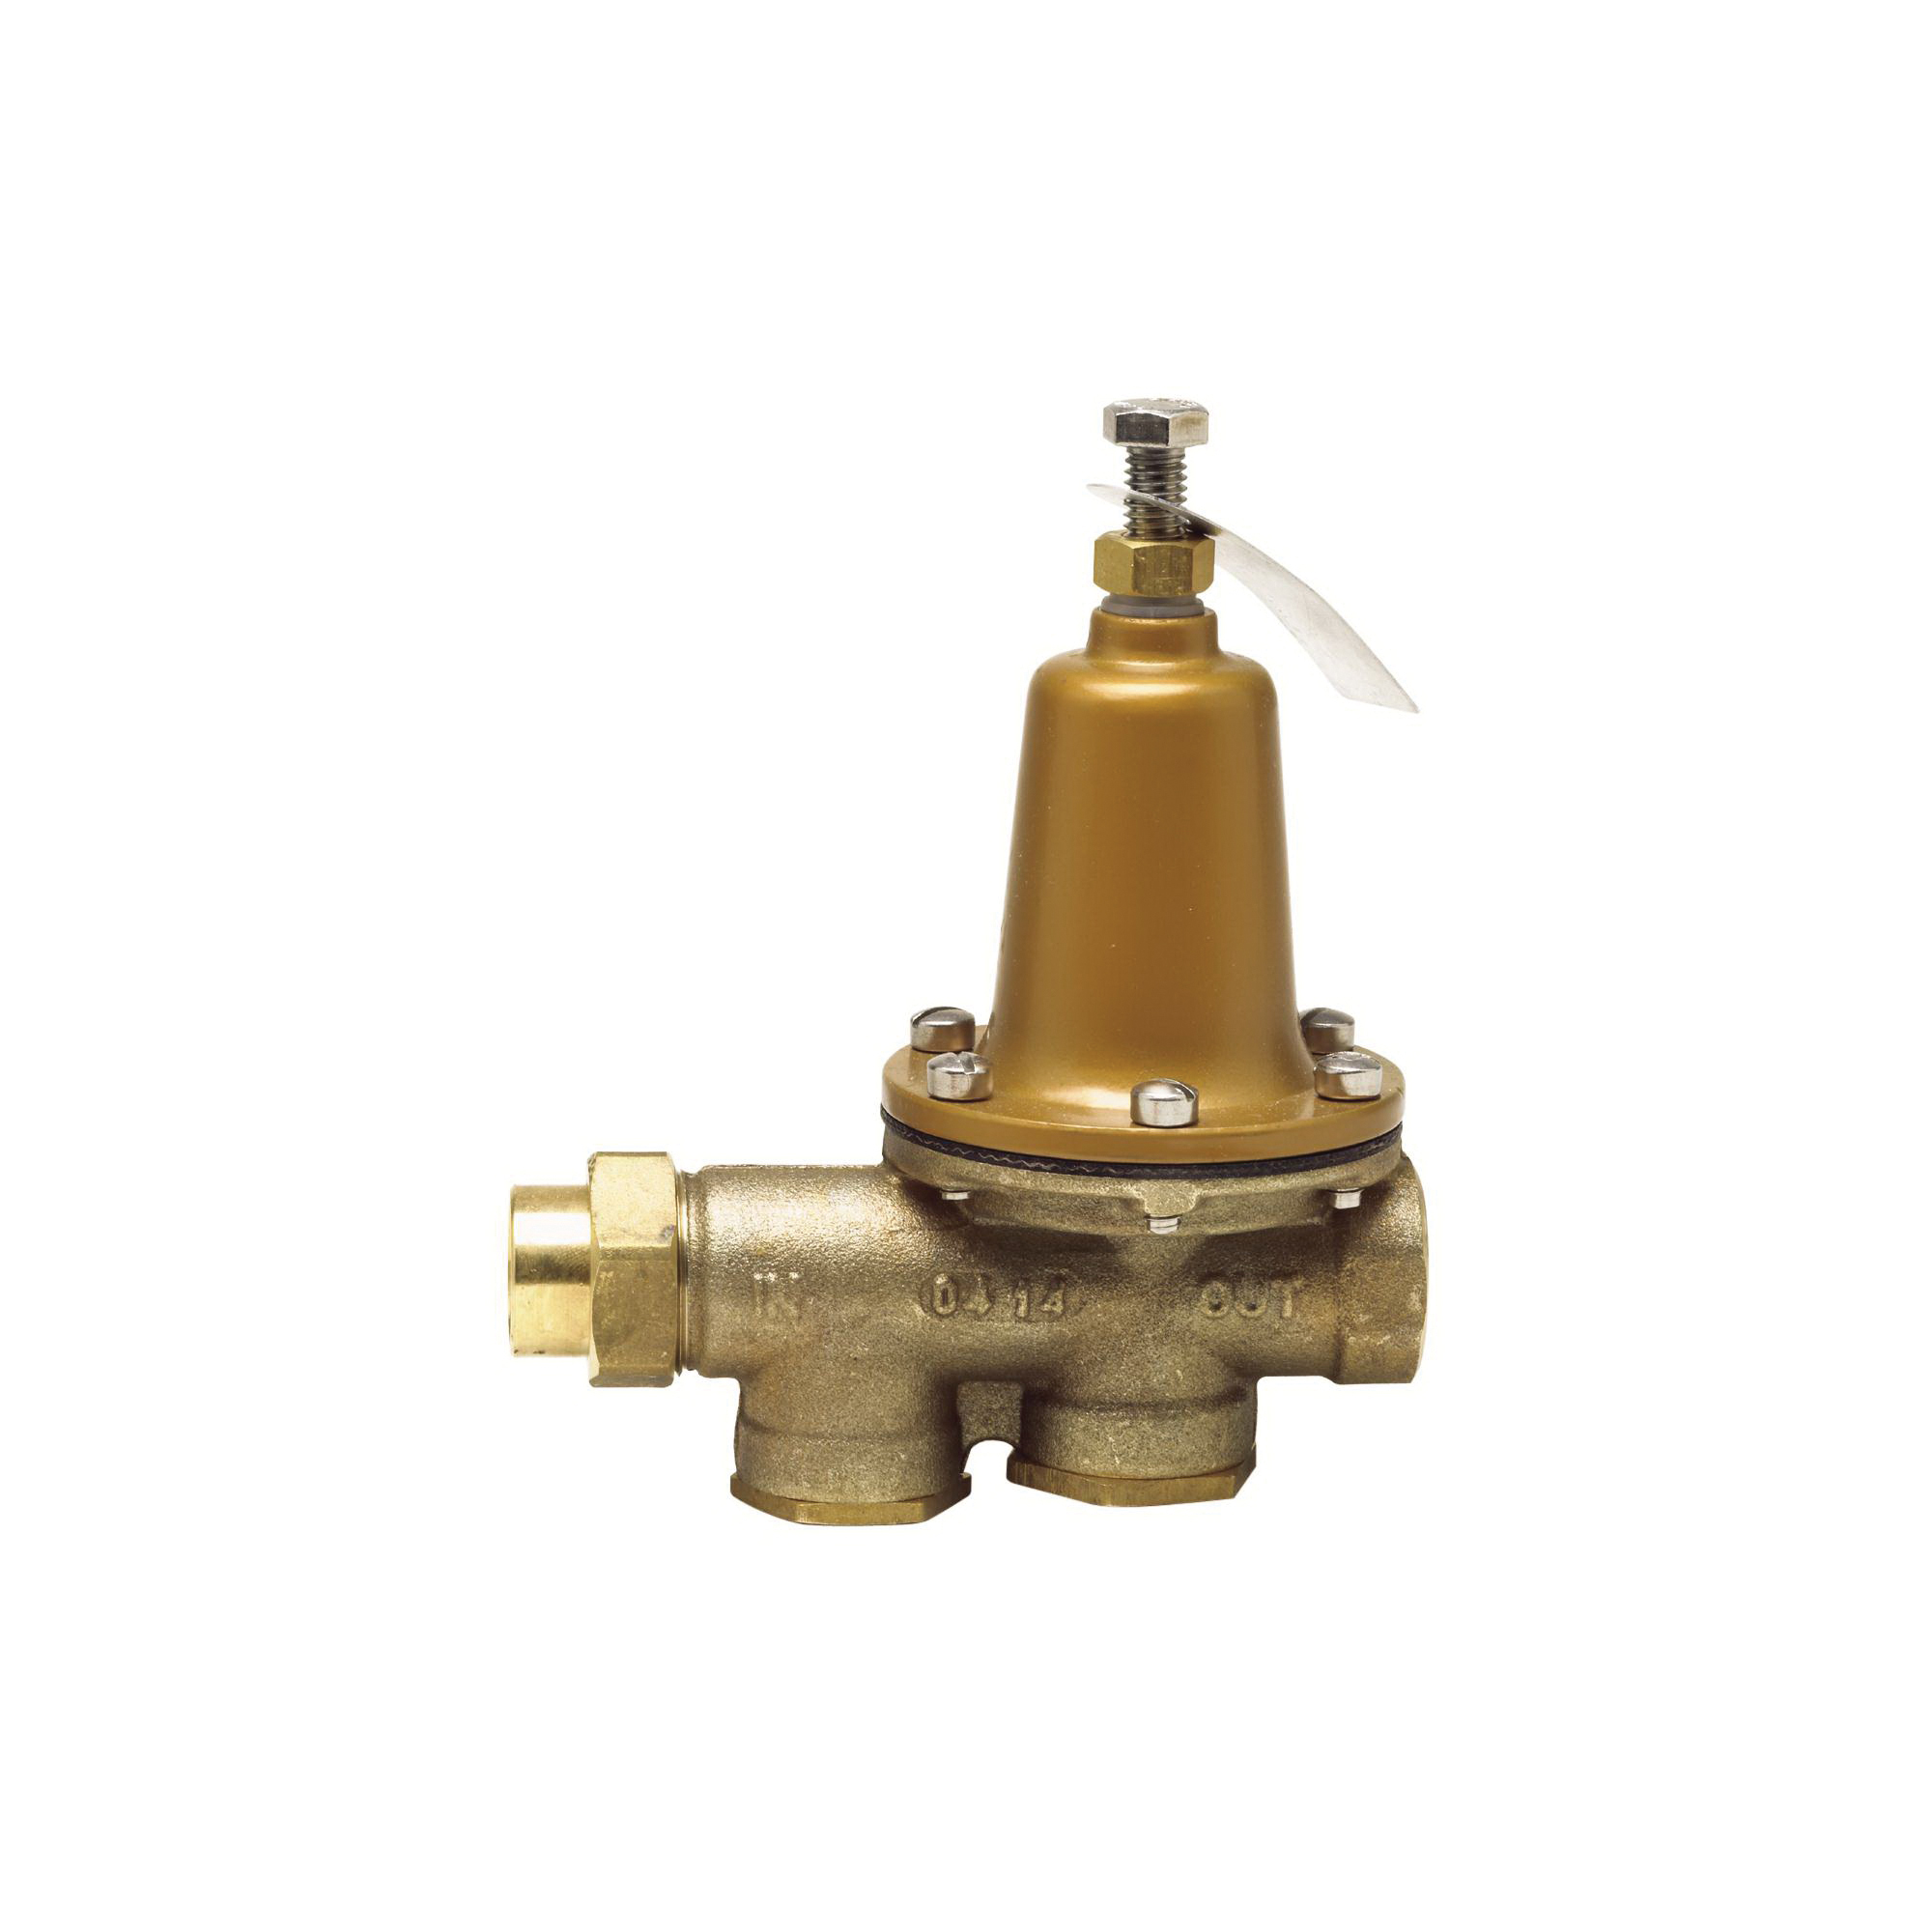 WATTS® 0009373 LF25AUB-Z3 Standard Capacity Pressure Reducing Valve With Bypass Check Valve, 1-1/4 in, FNPT Union x FNPT, 10 to 35 psi, Copper Silicon Alloy Body